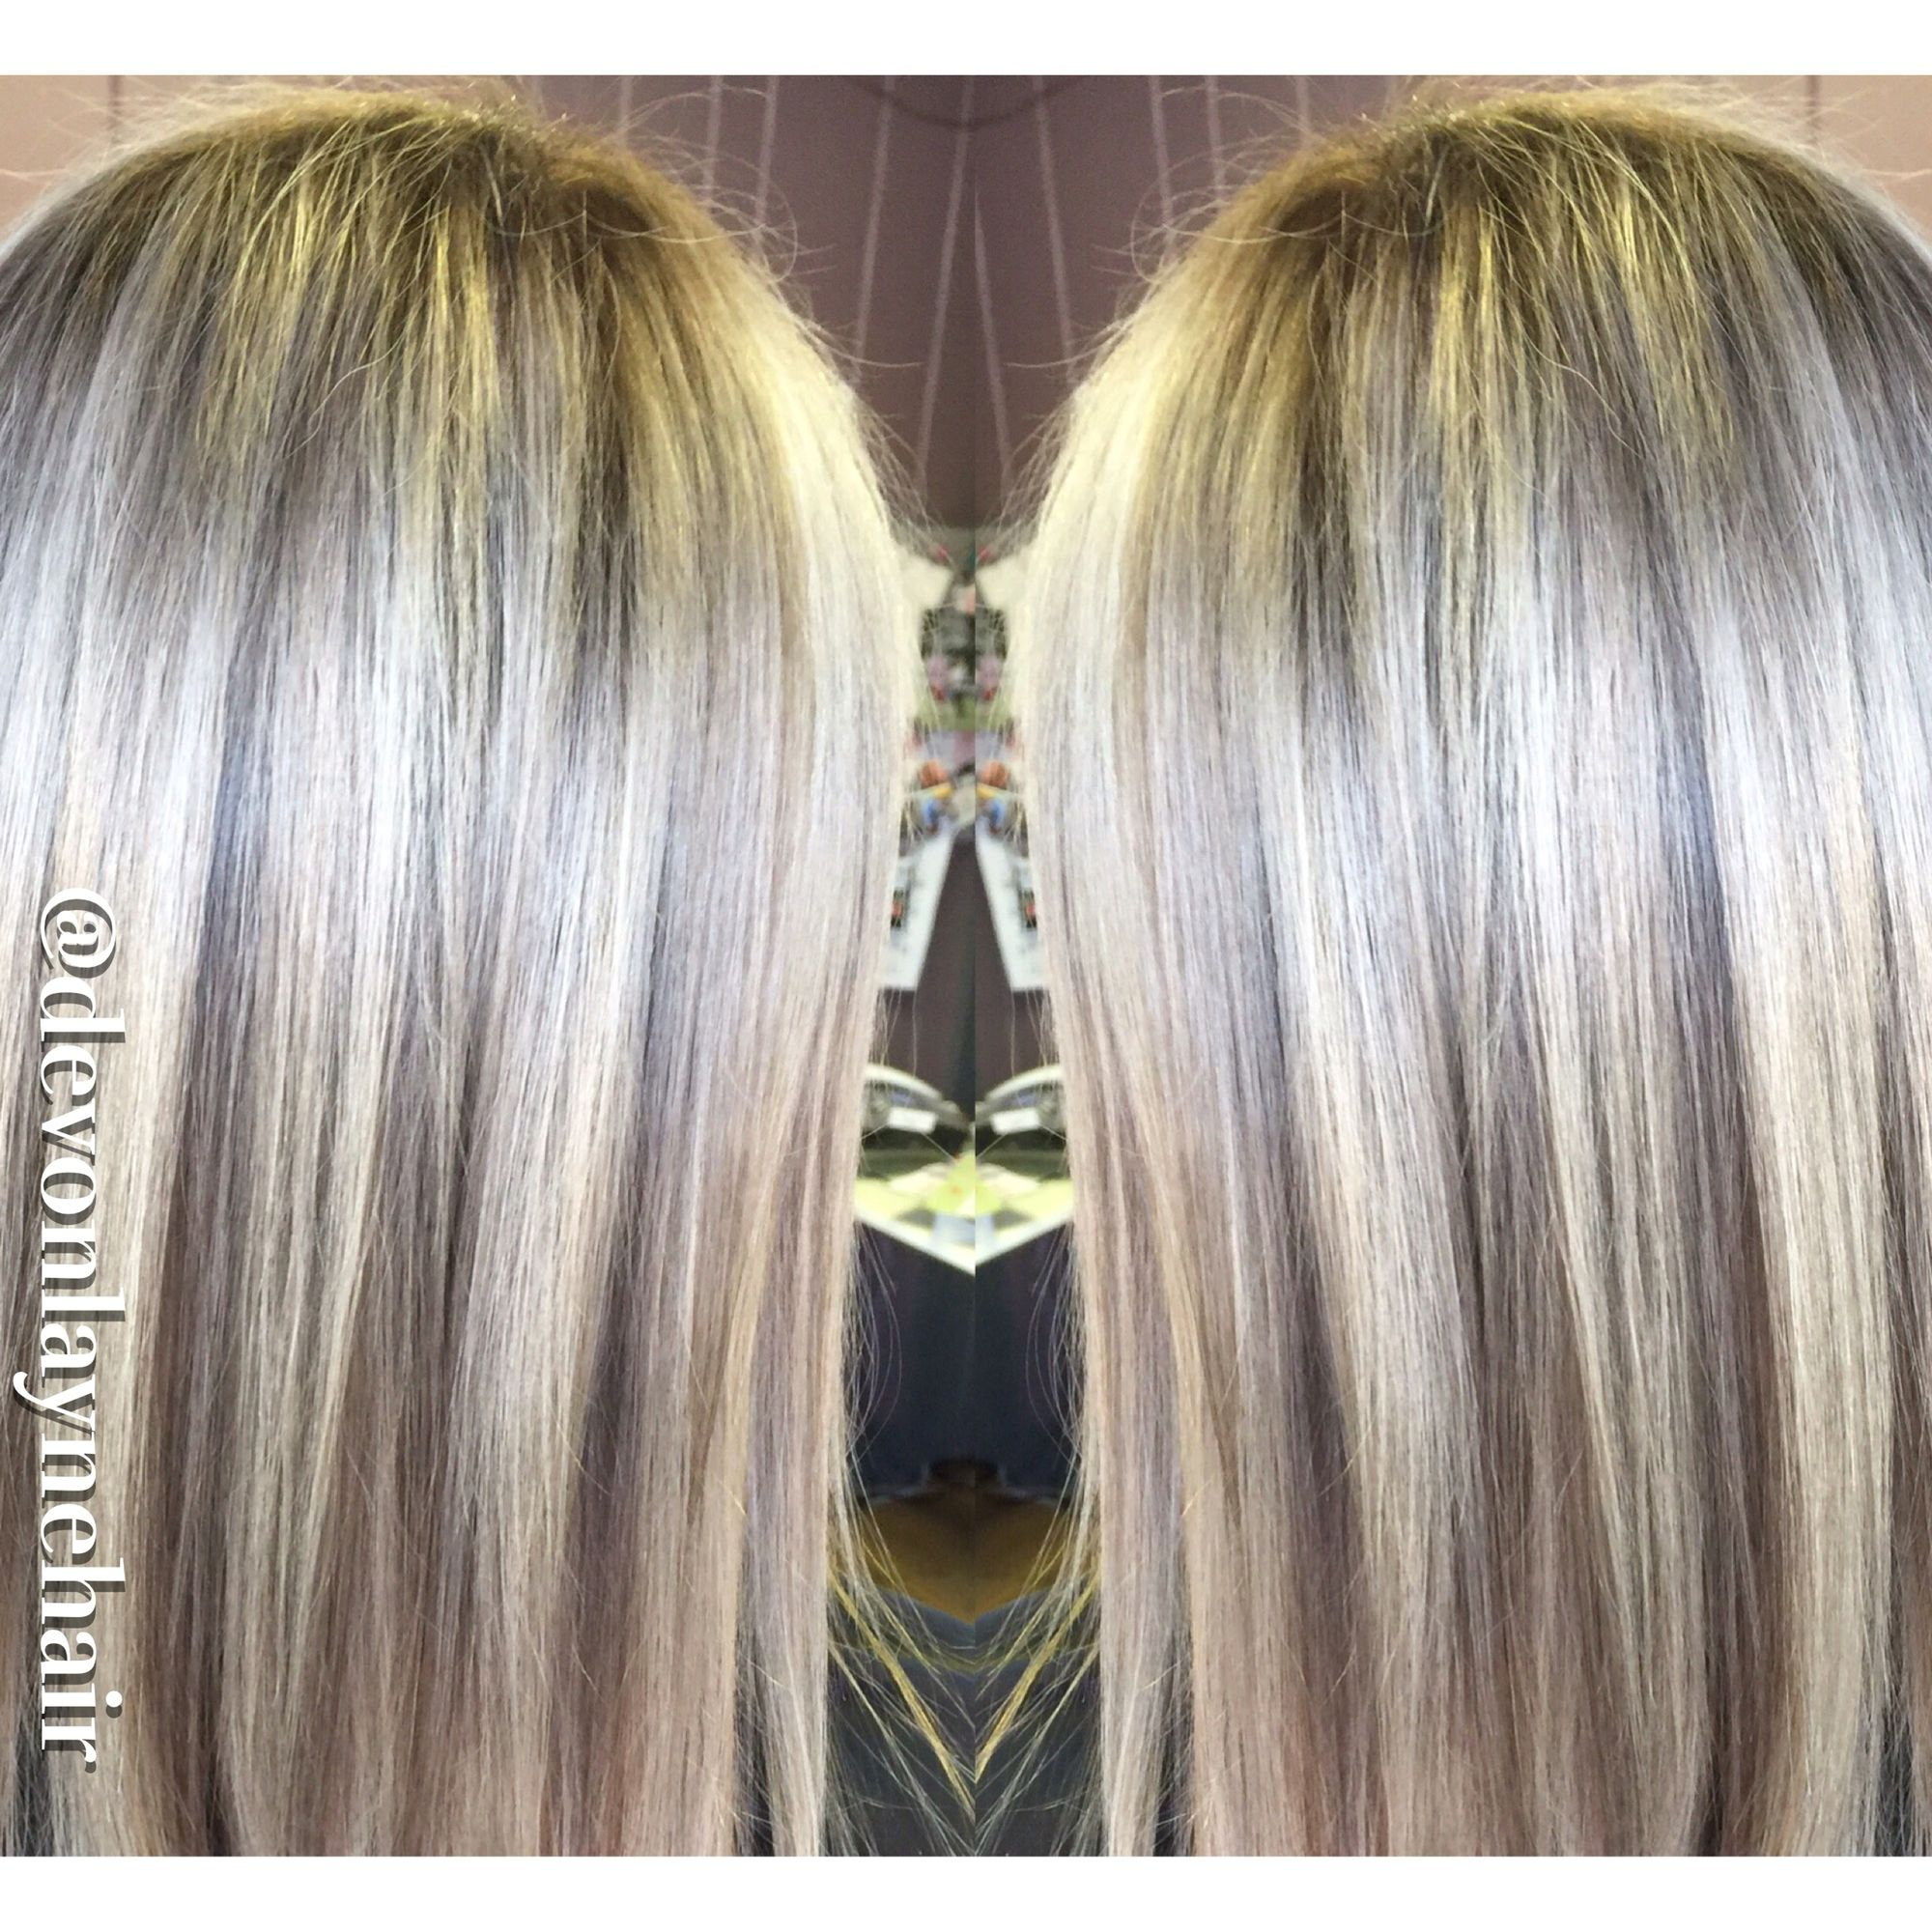 Icy Blonde Highlights Baby Lowlights Shadow Root Straight Icy